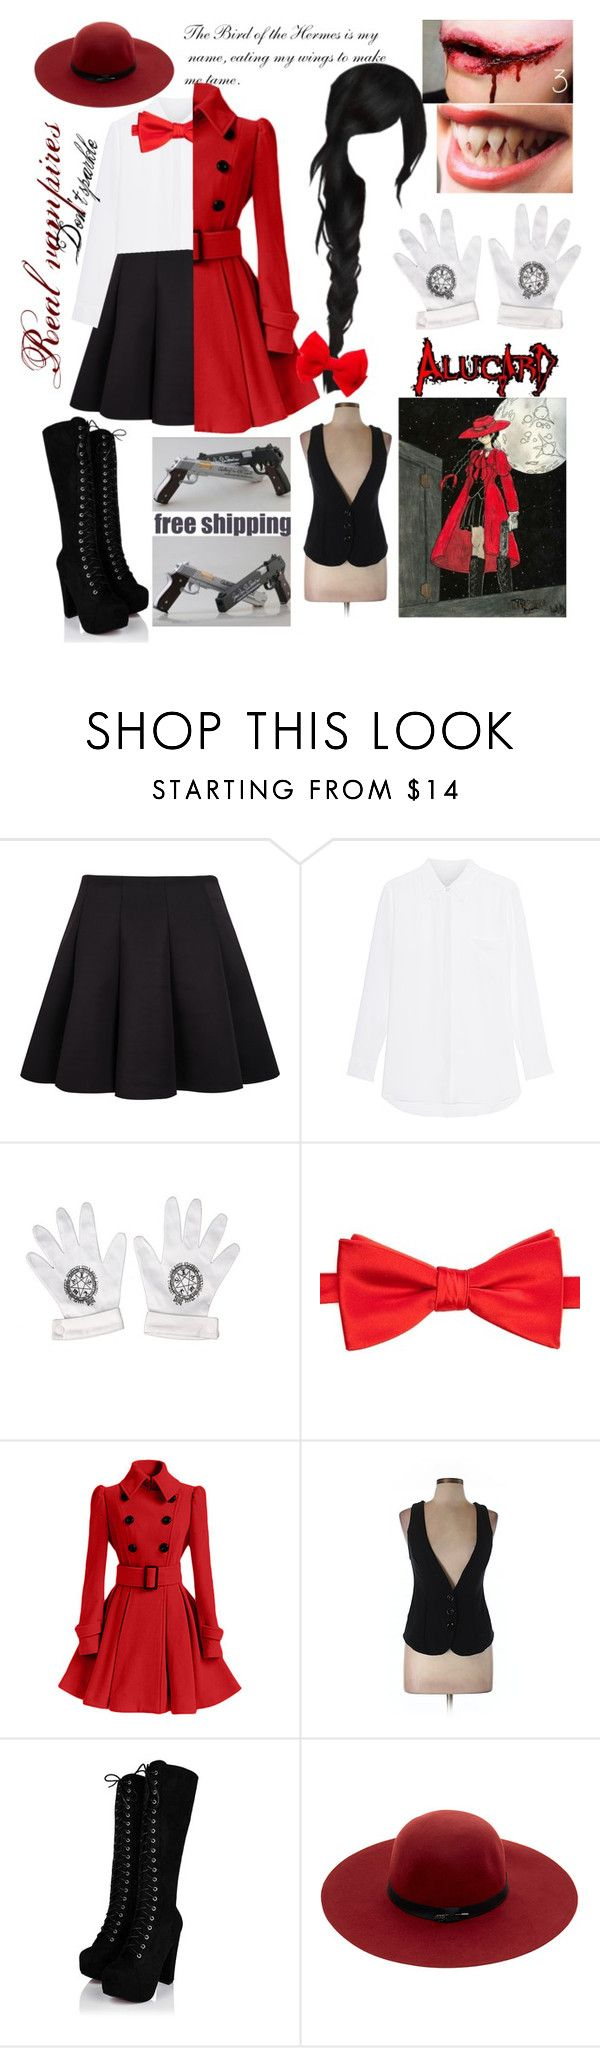 """""""Female Alucard Cosplay"""" by alarmico ❤ liked on Polyvore featuring Saddlebred, Ella Moss, Maison Scotch, claire's and Forum"""